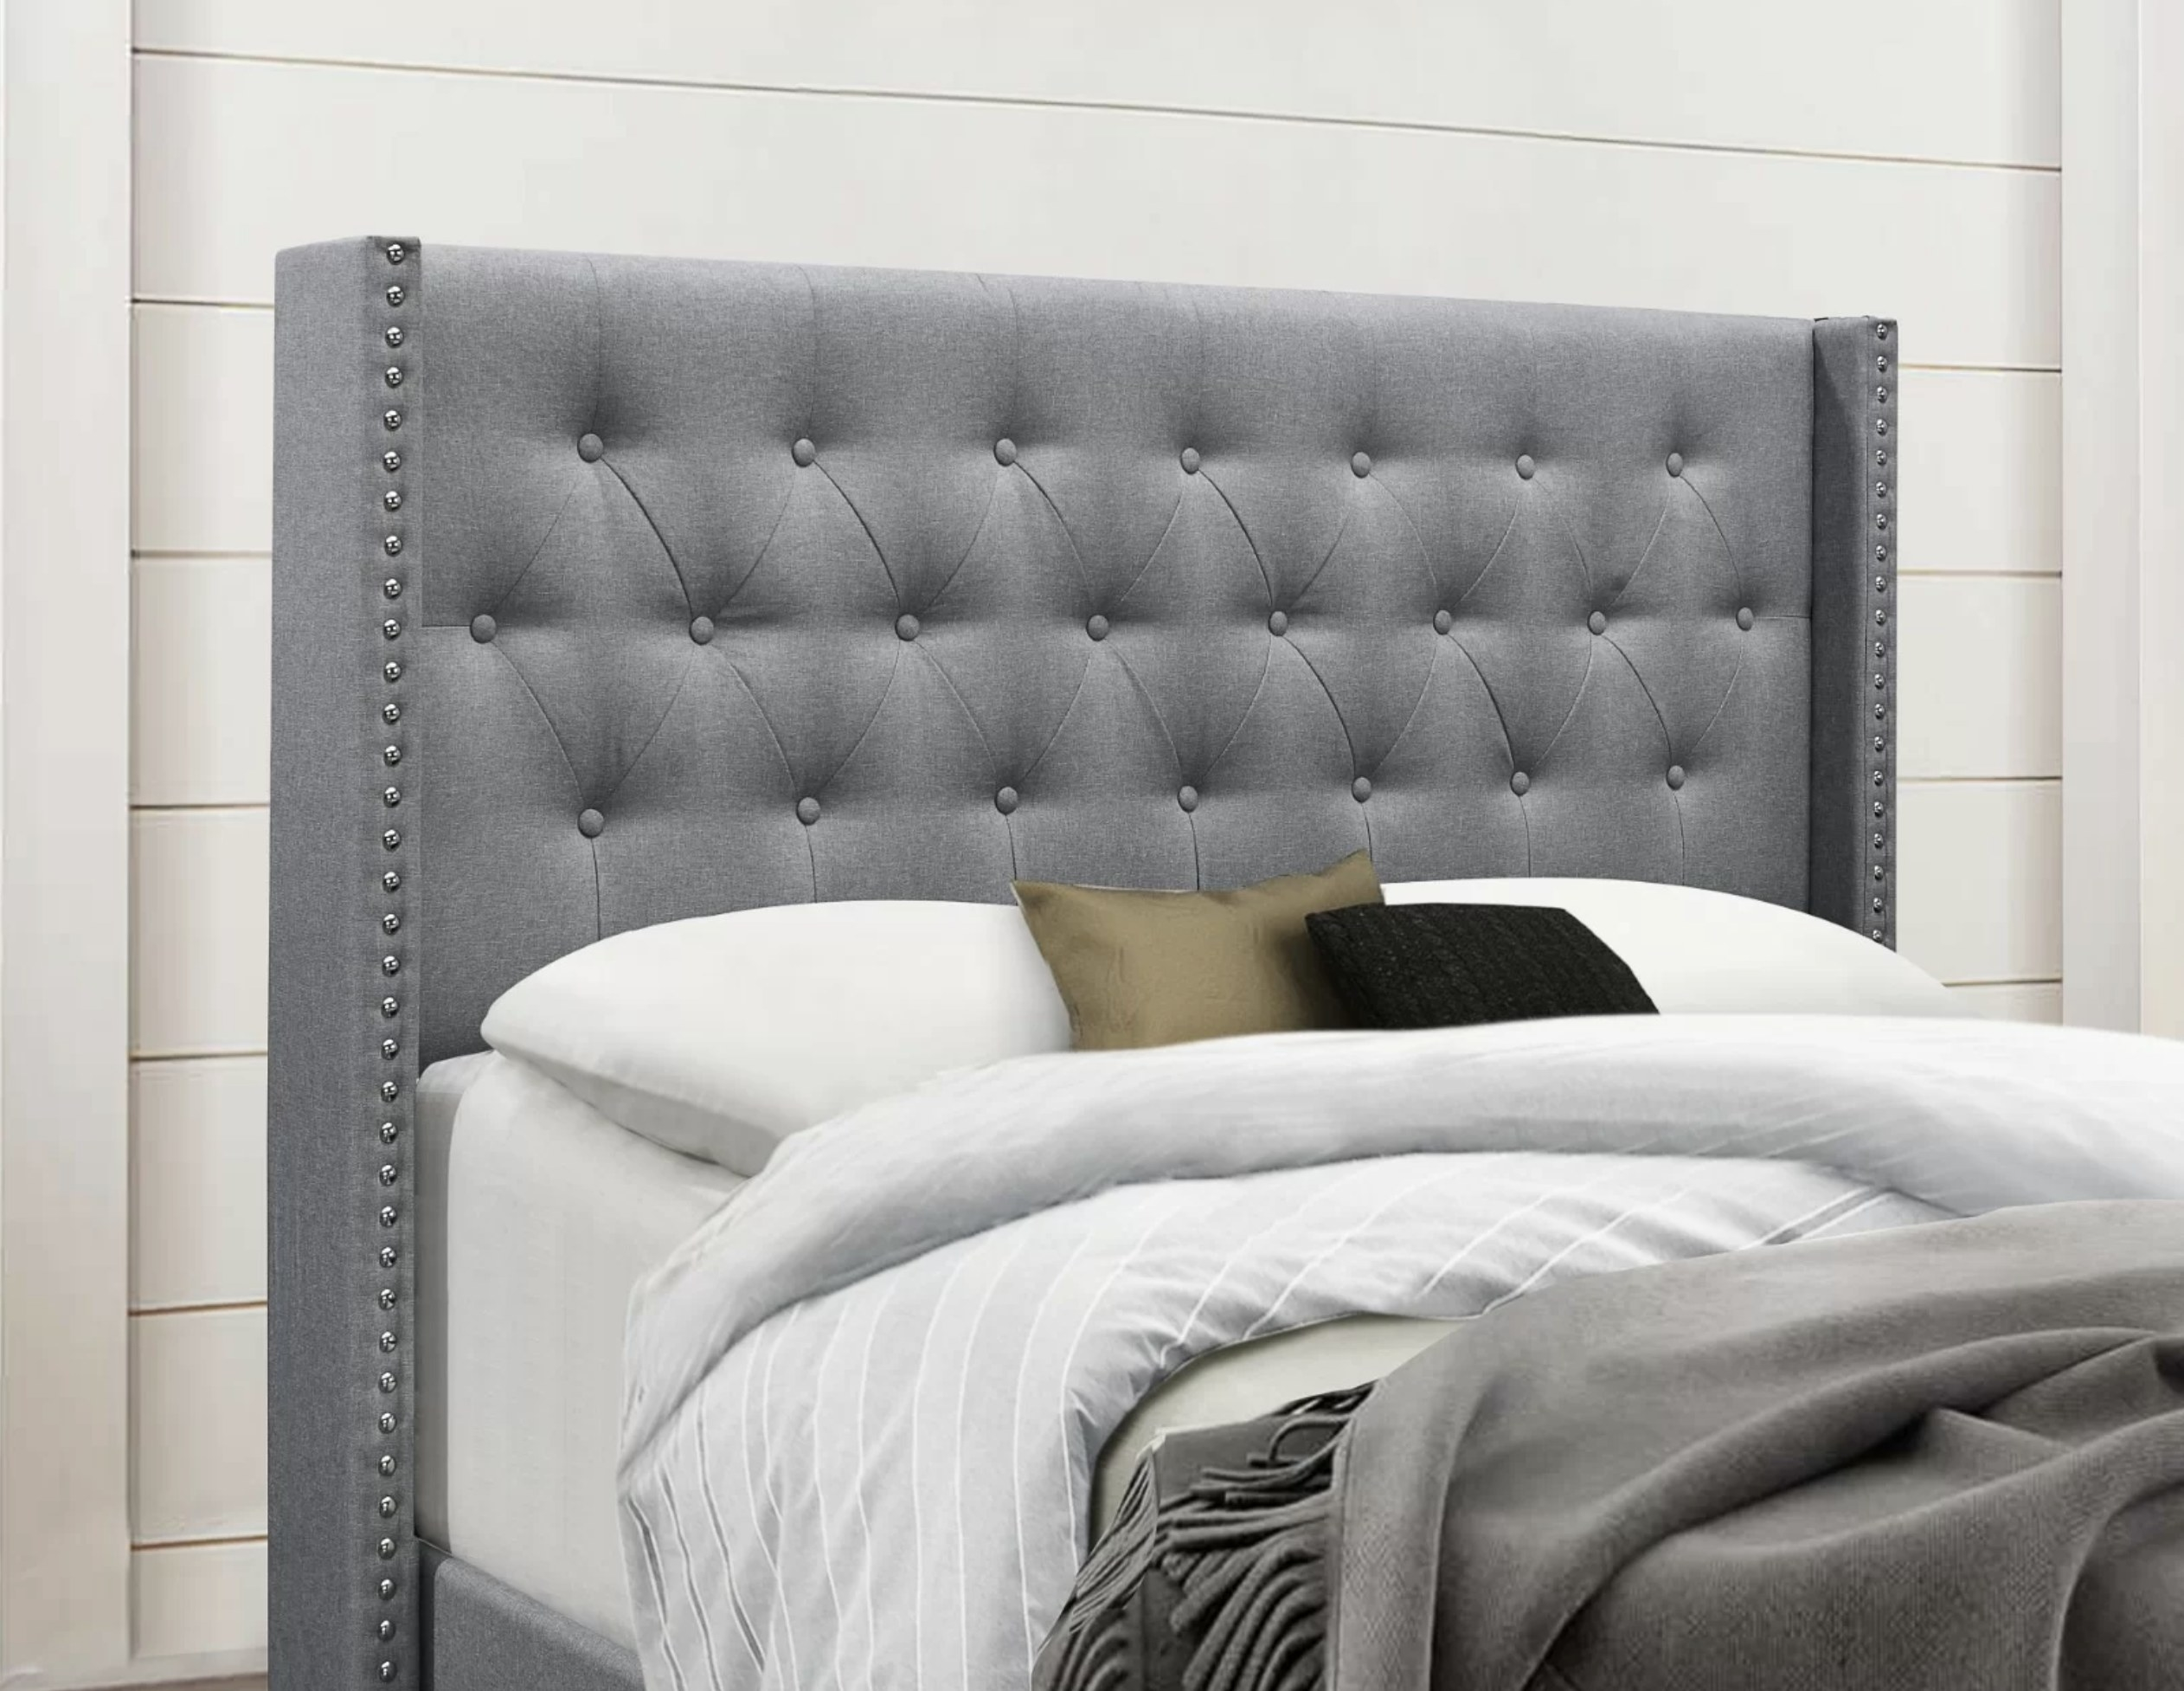 the bed frame in gray